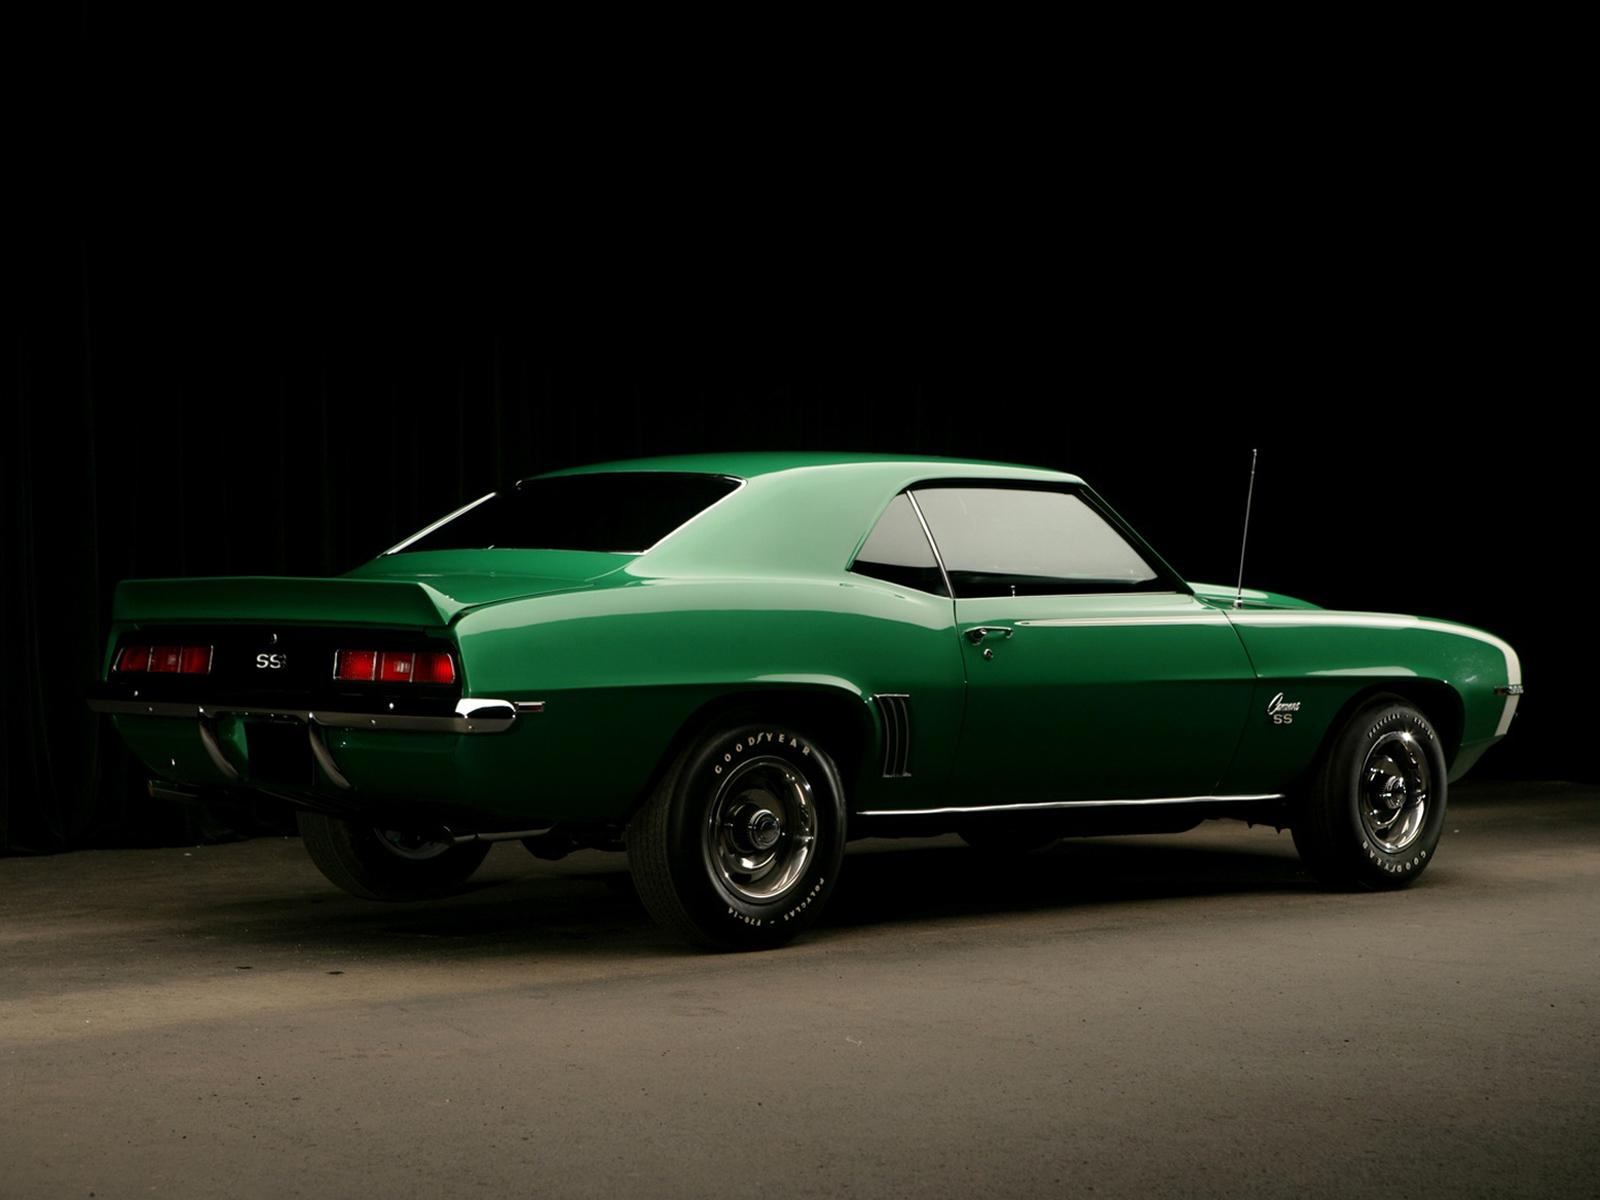 American Muscle Car Wallpaper 6523 Hd Wallpapers 1600x1200